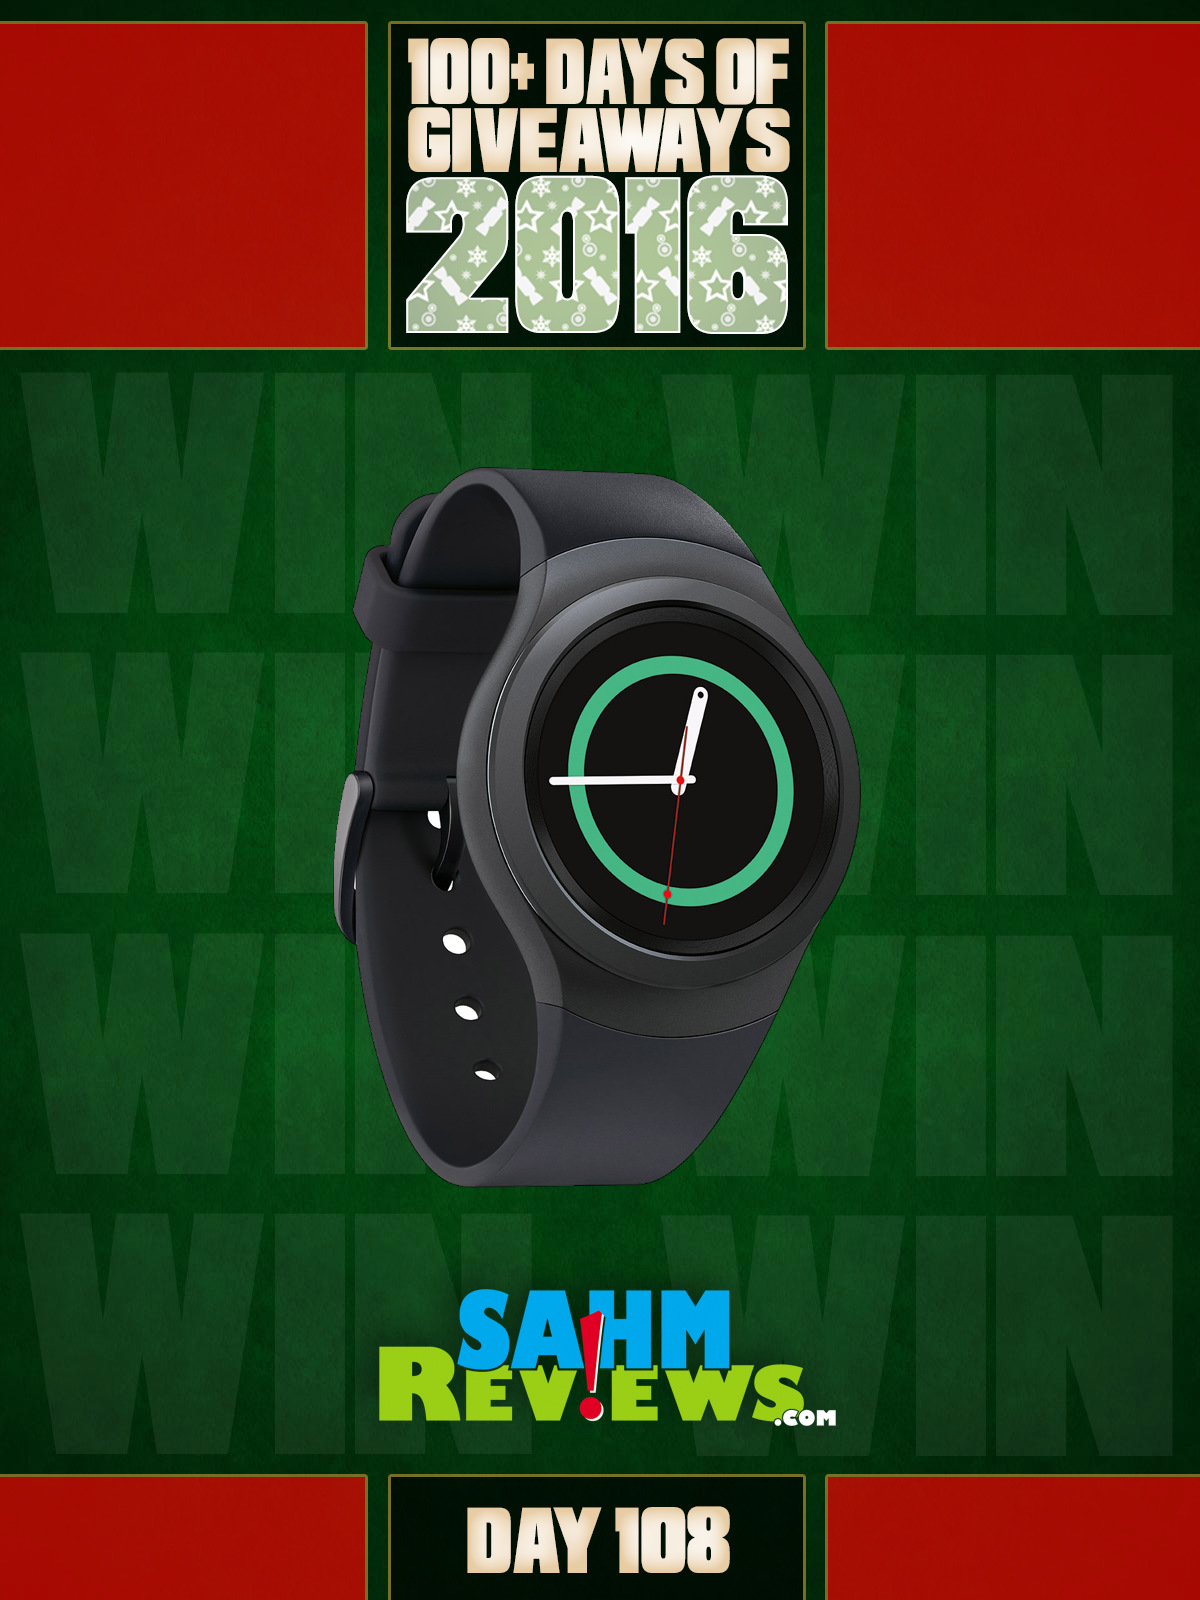 100+ Days of Giveaways - Day 108 - Samsung Gear S2 Smart Watch